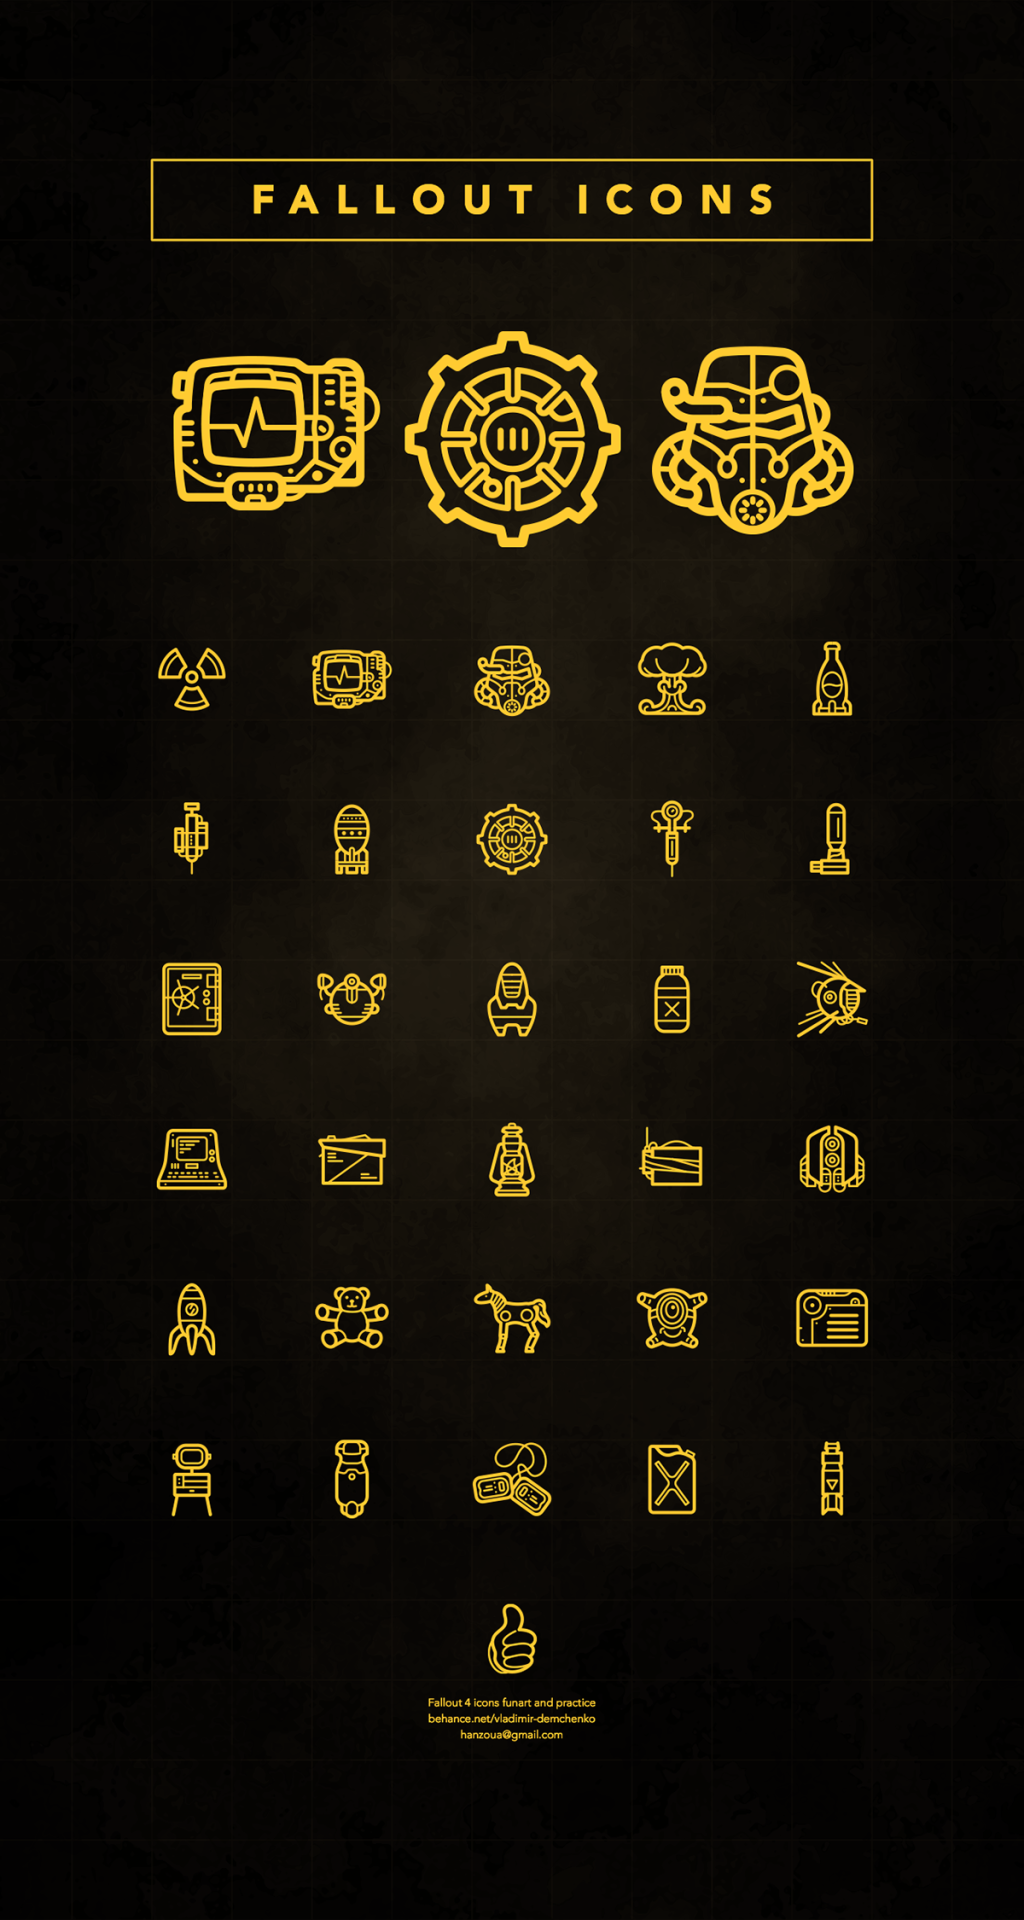 Fallout icons vladimir demchen miscellaneous pinterest ideas fallout icons vladimir demchen gumiabroncs Image collections